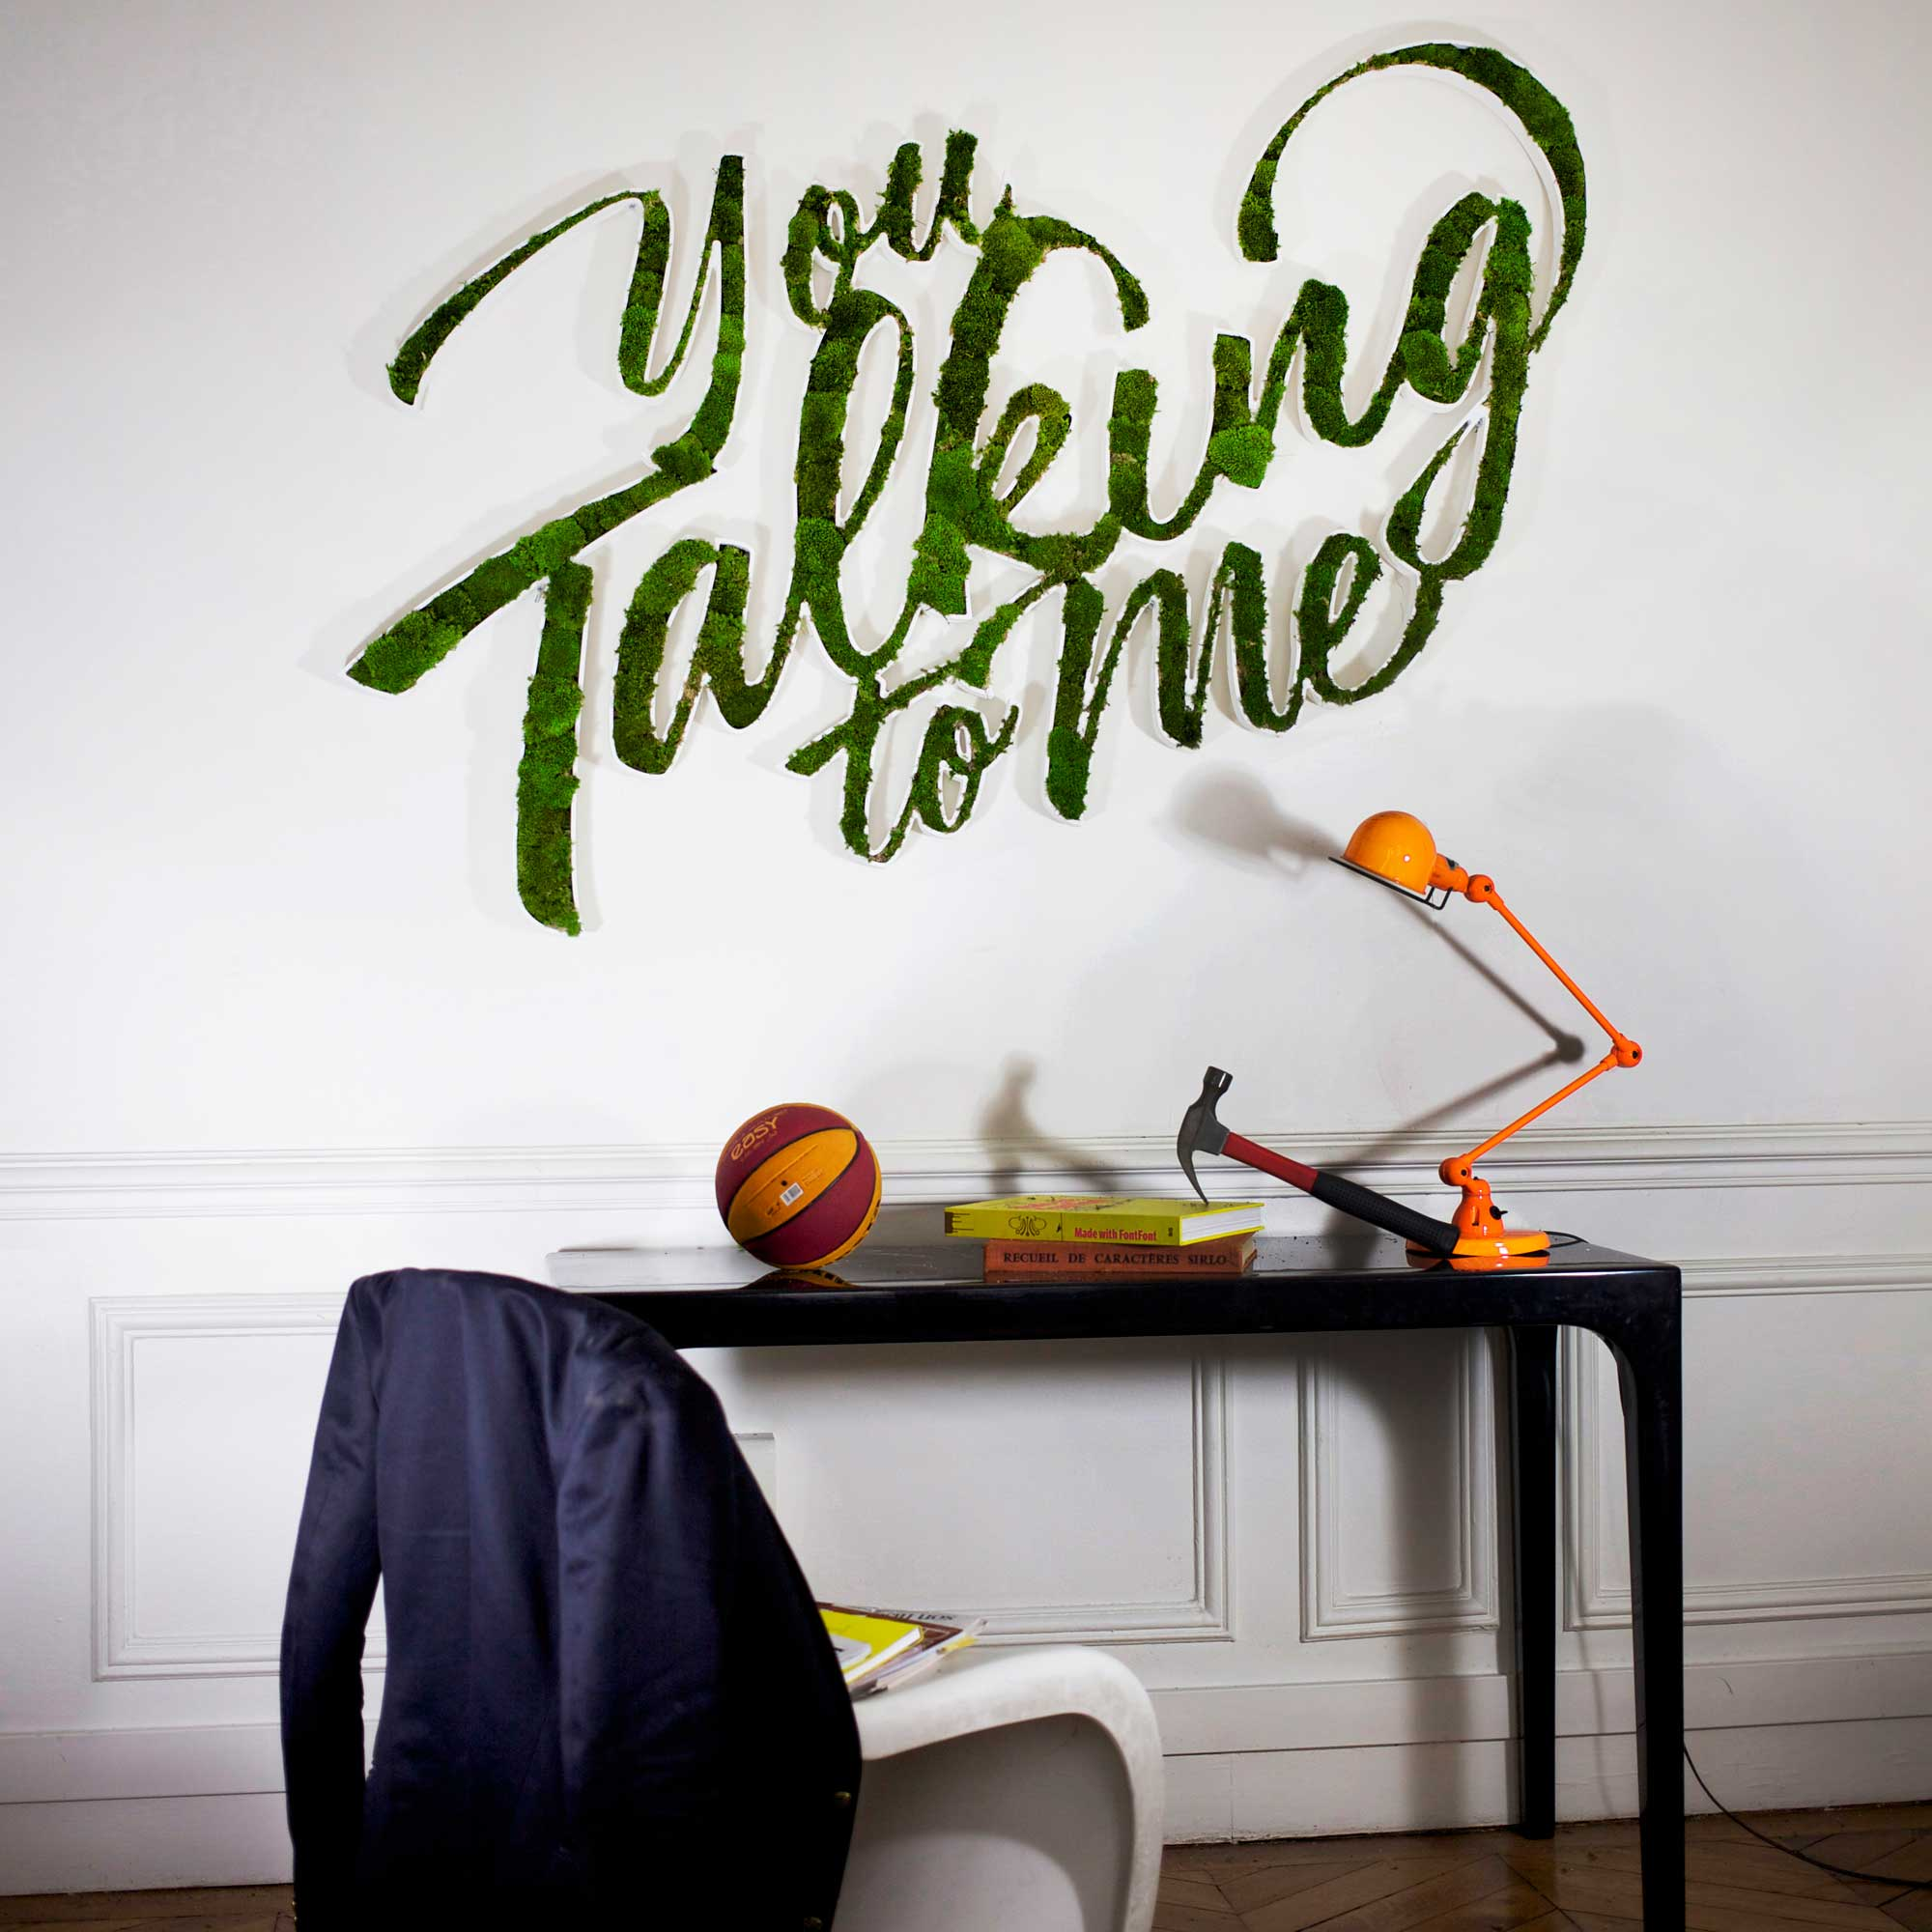 Popular Contemporary Wall Decals by Colorful Wall Decals INC